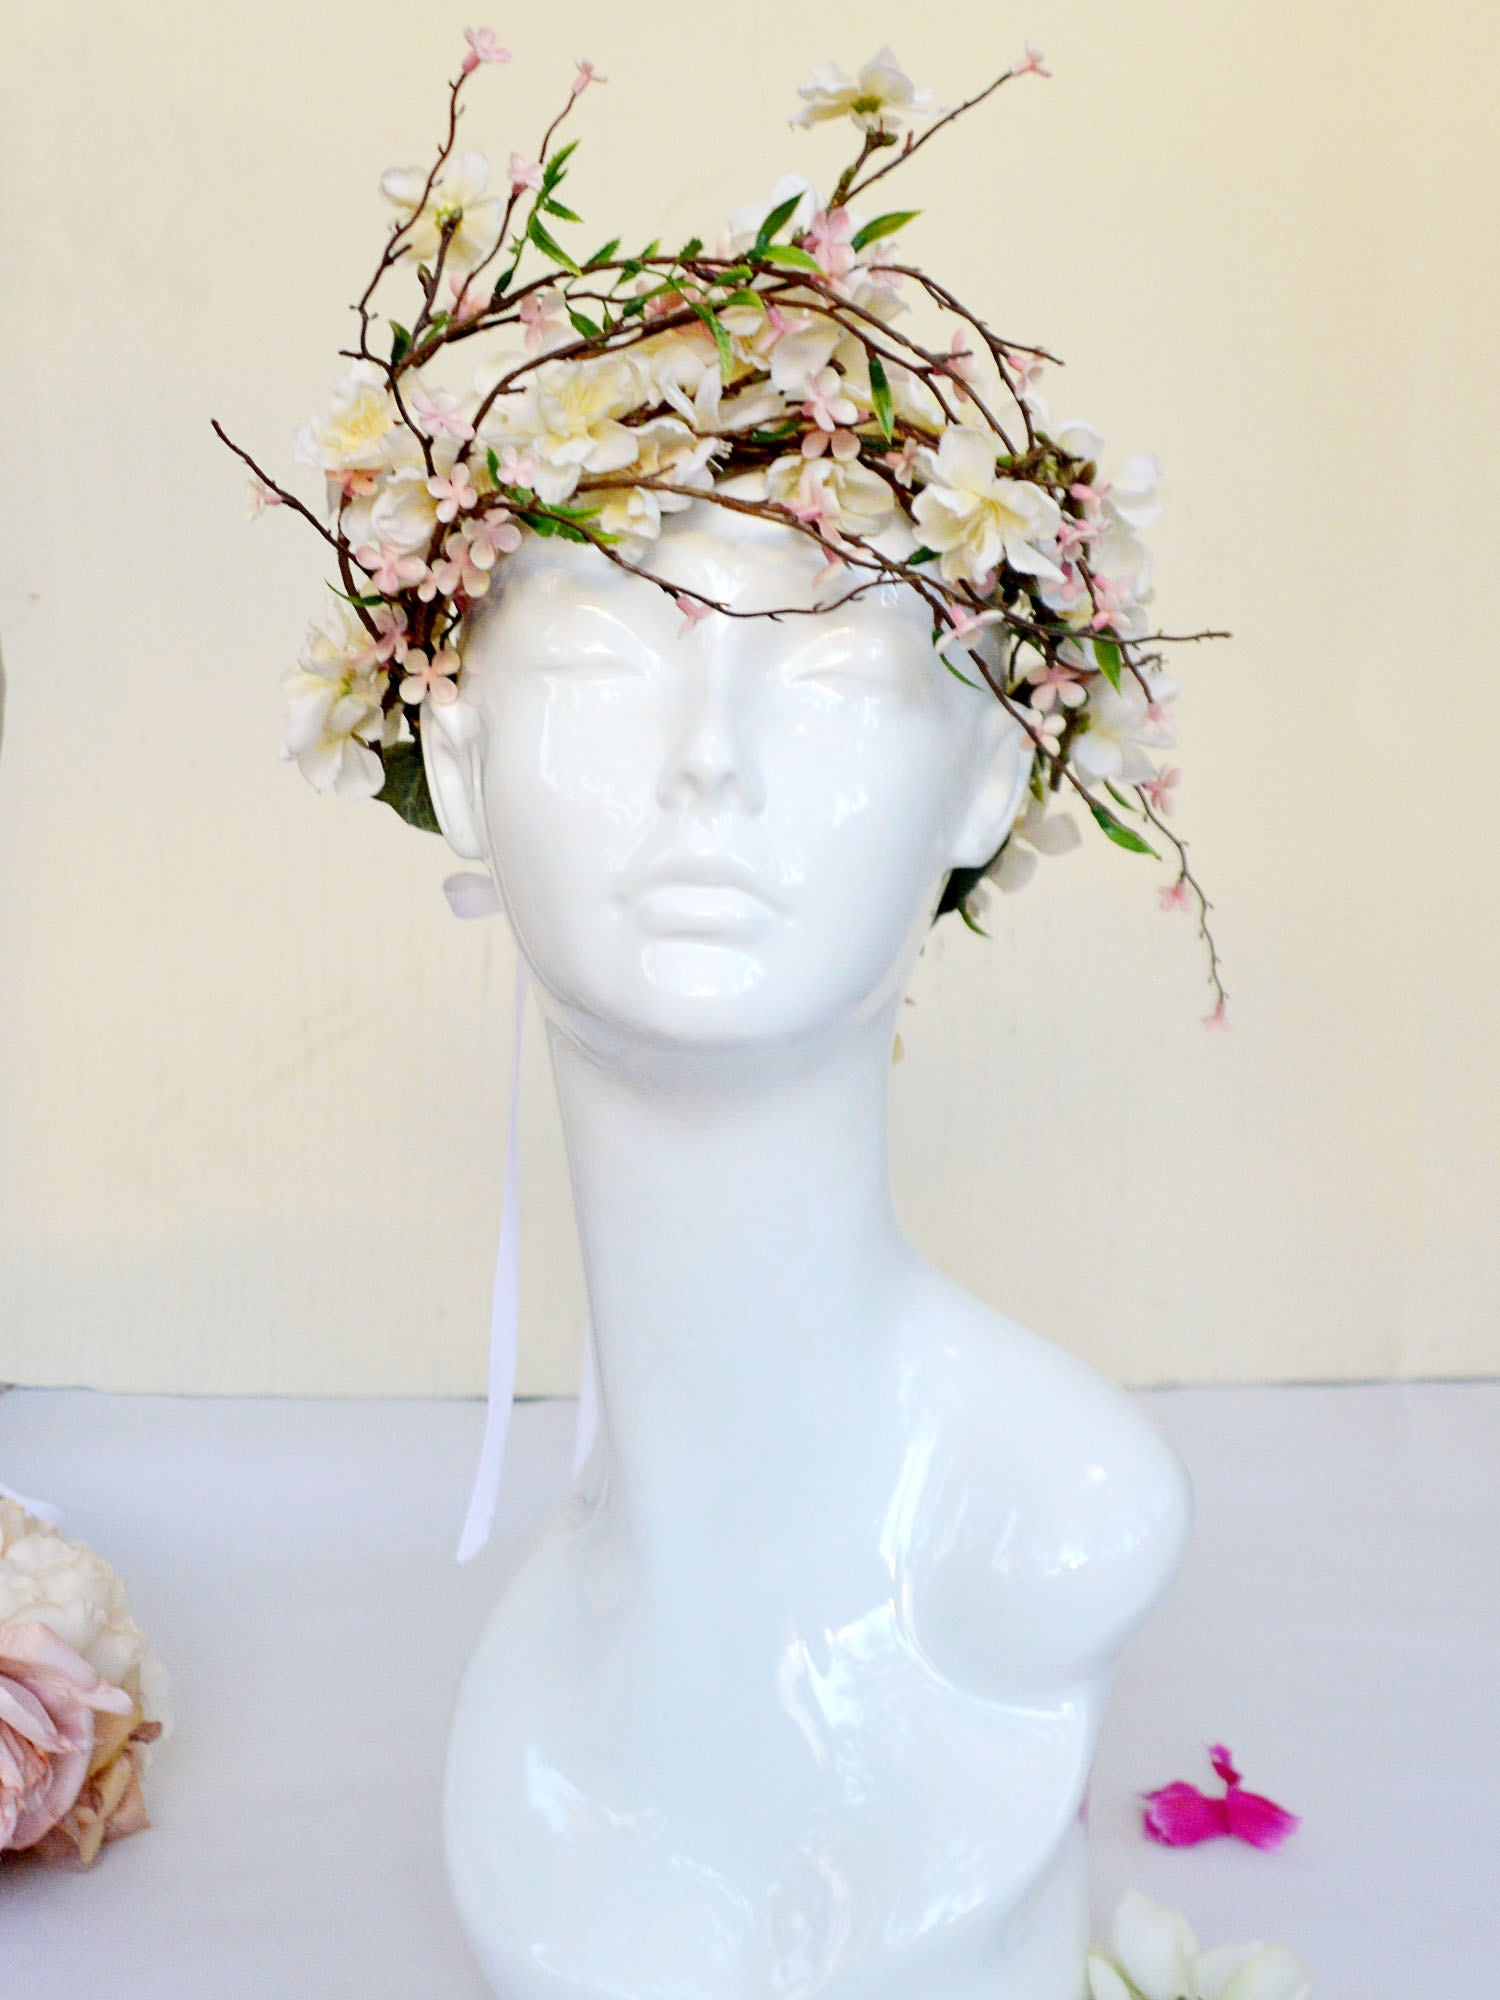 White mannequin head wearing a wedding crown of cherry blossoms.